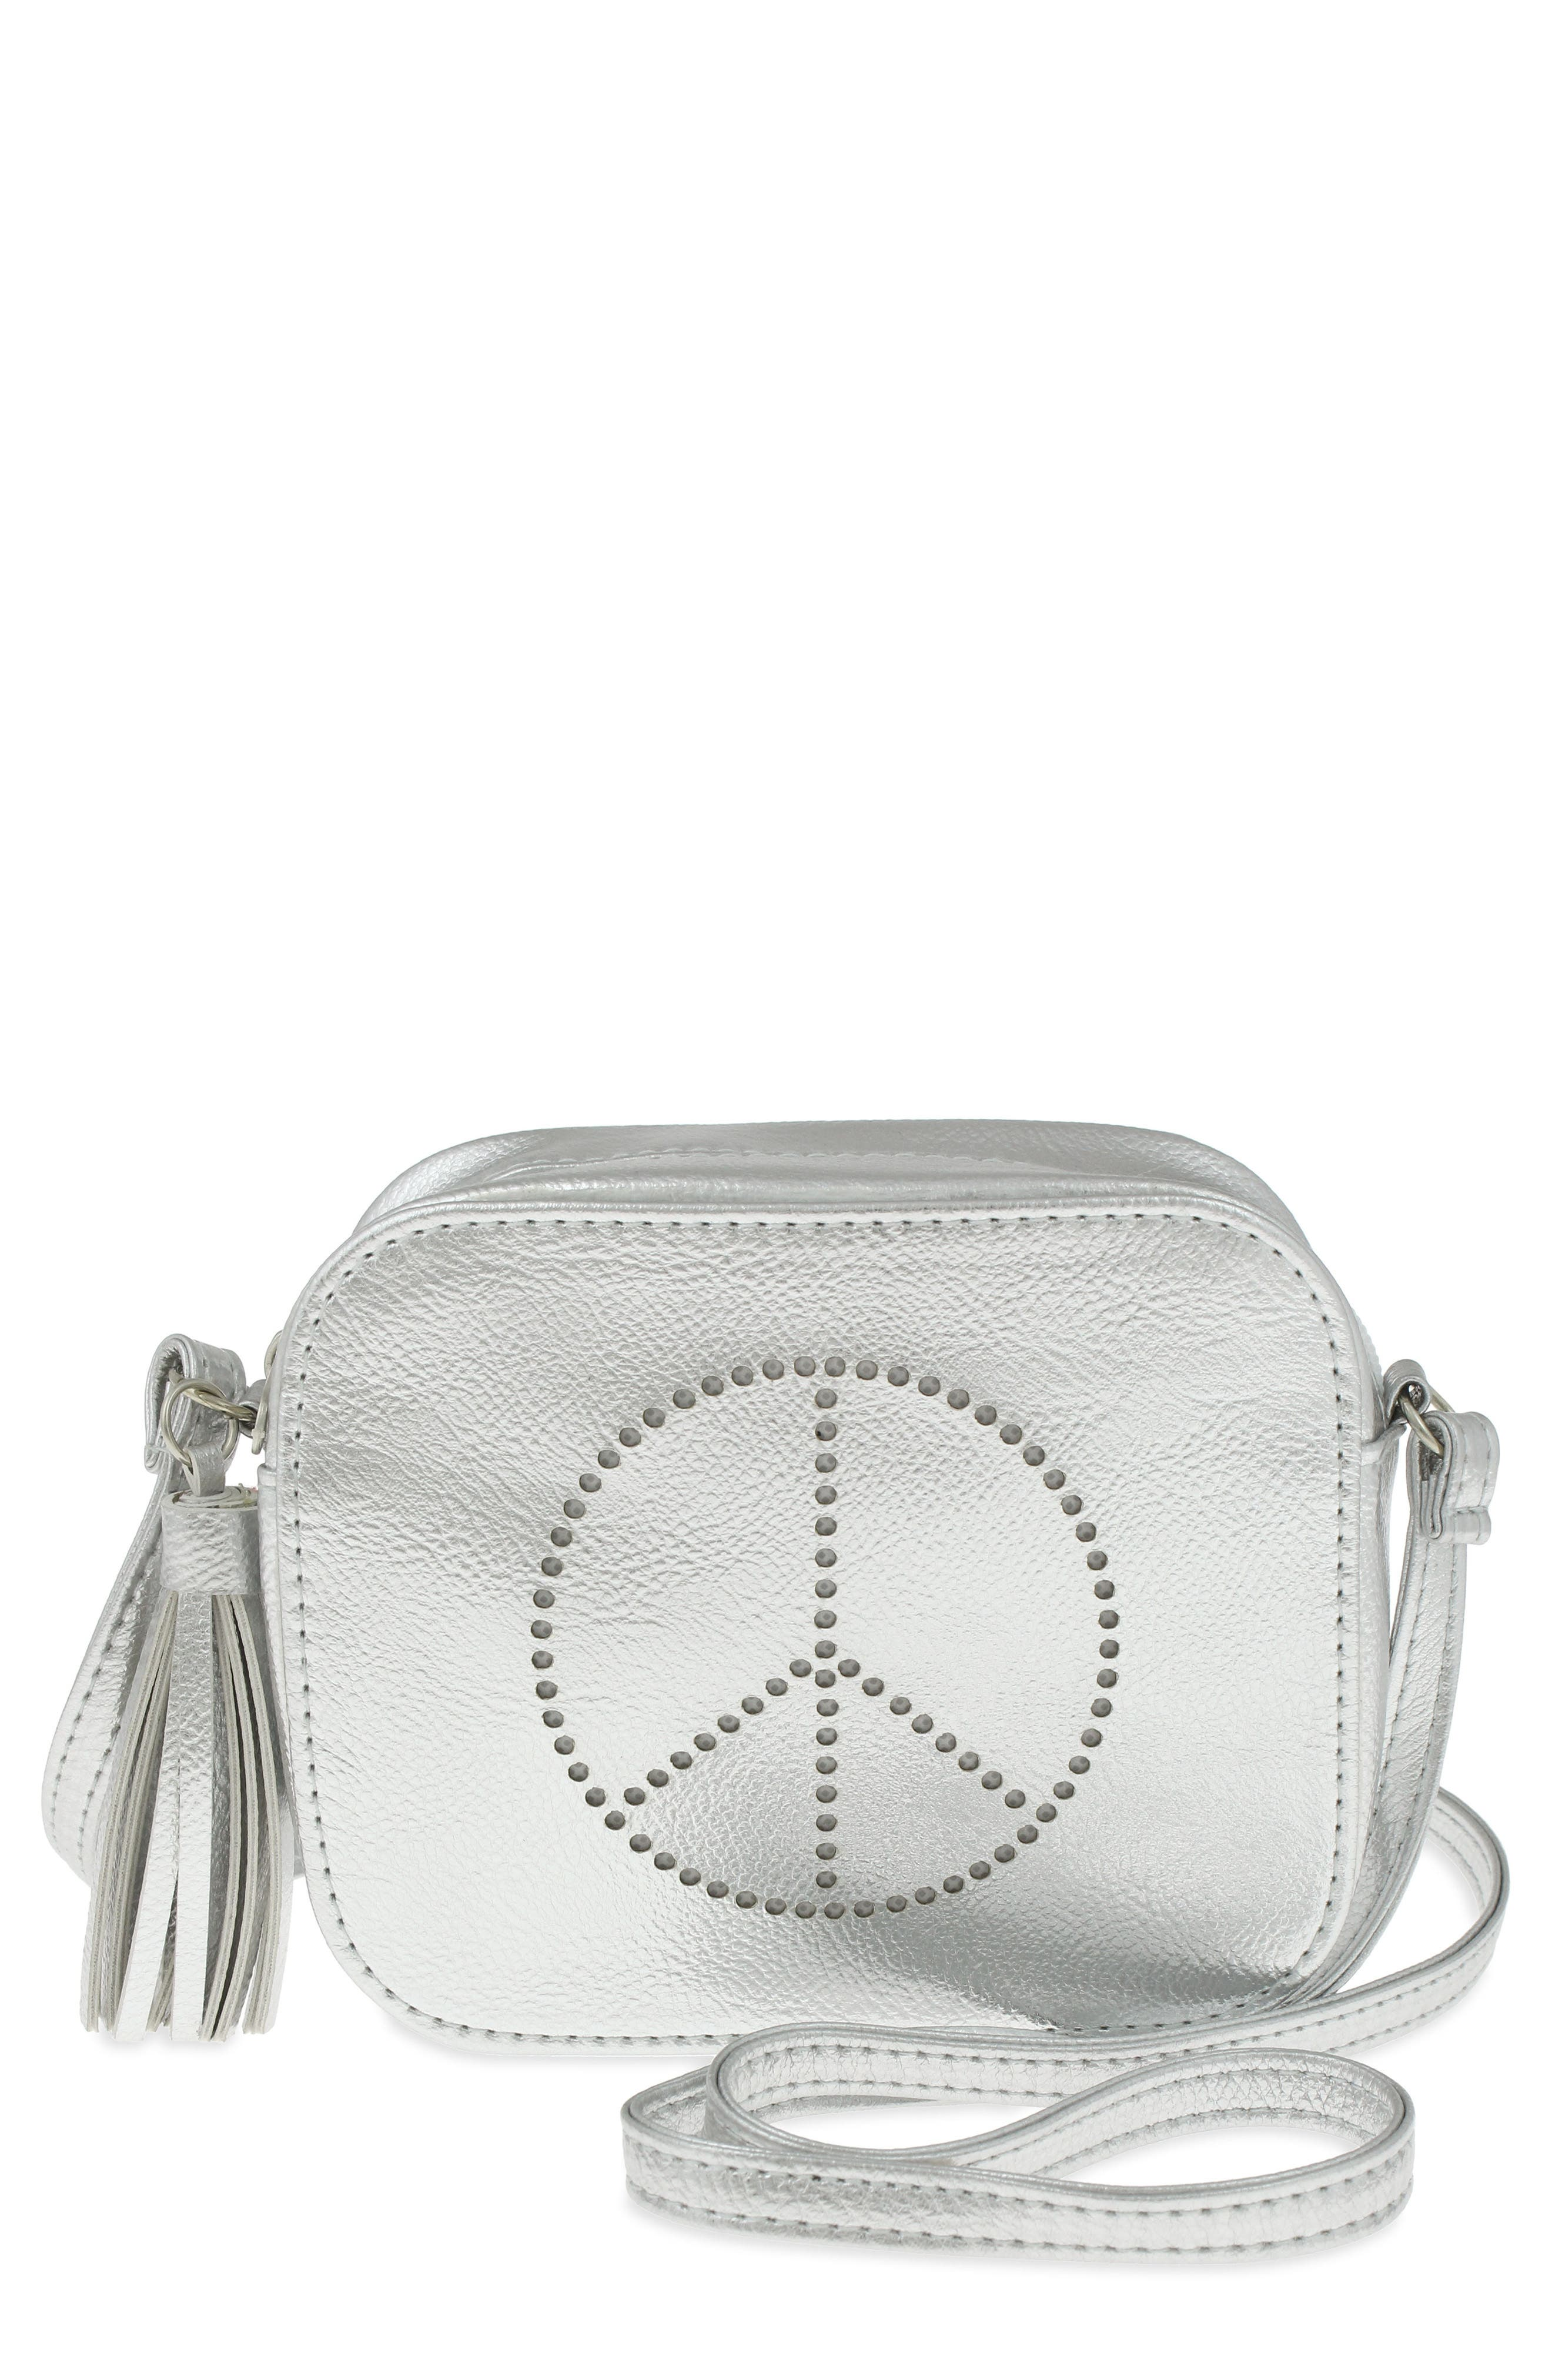 Peace Sign Faux Leather Crossbody Bag,                         Main,                         color, Silver Combo